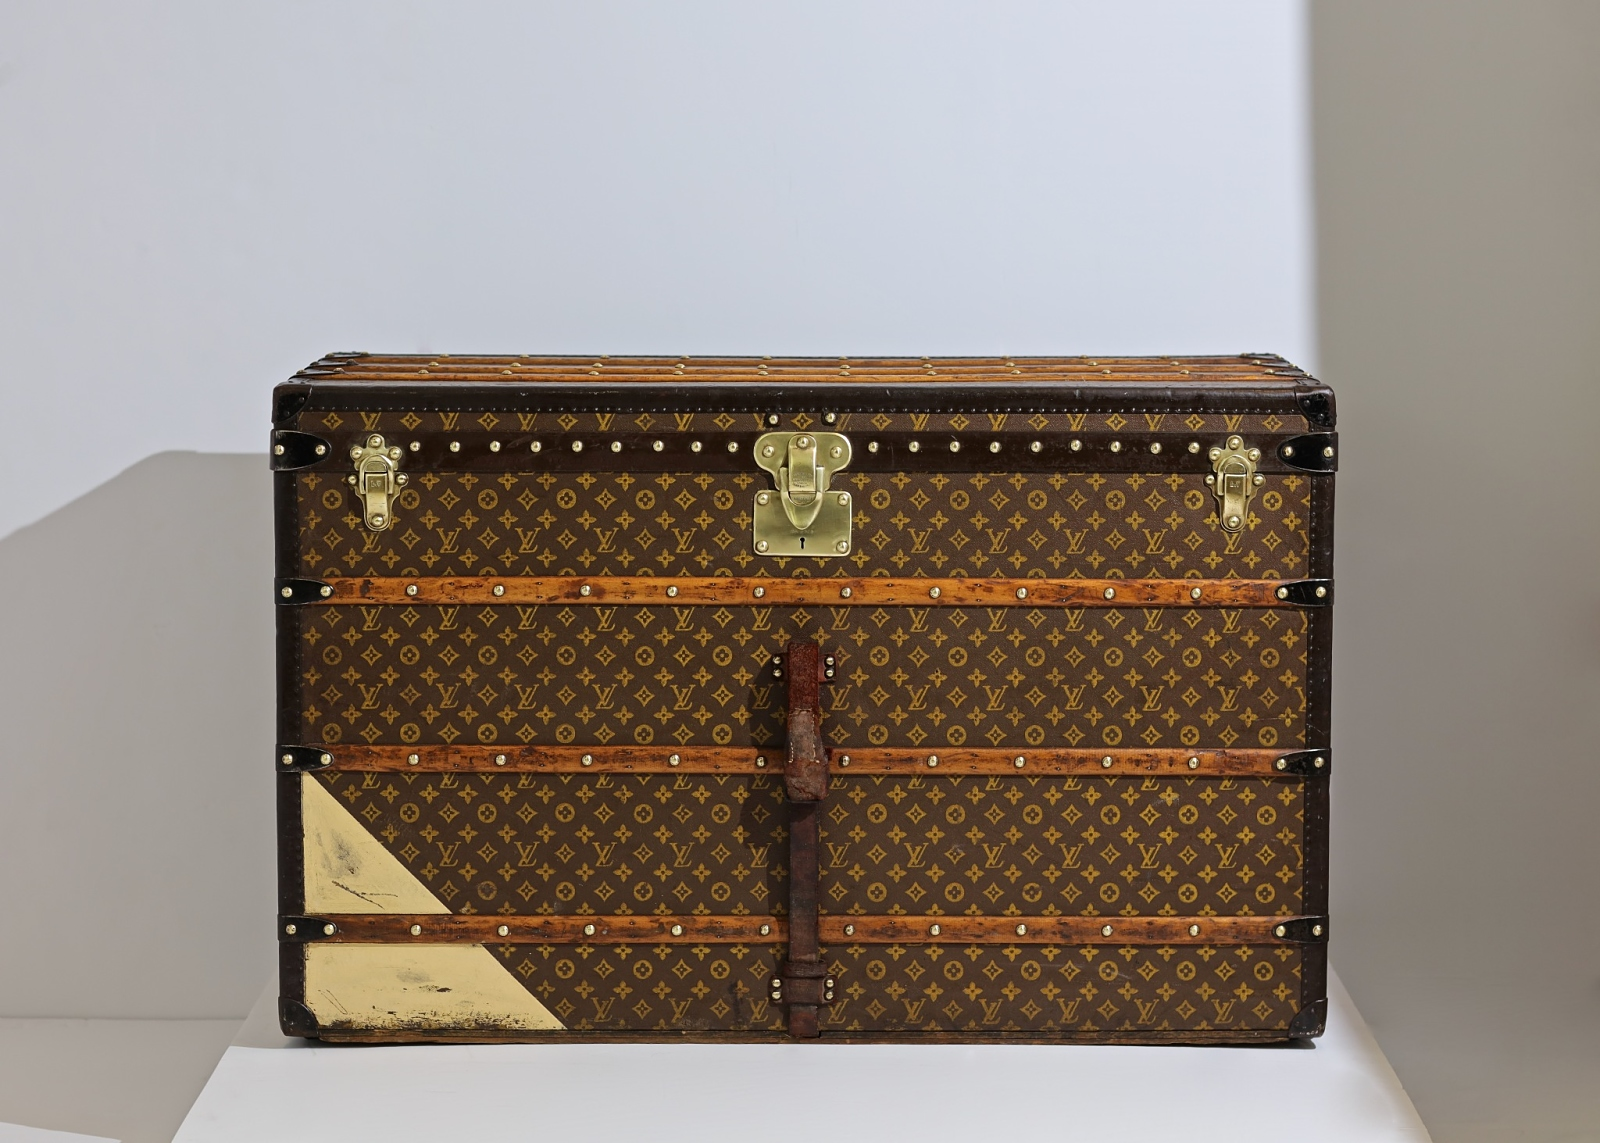 the-well-traveled-trunk-louis-vuitton-thumbnail-product-5662-1